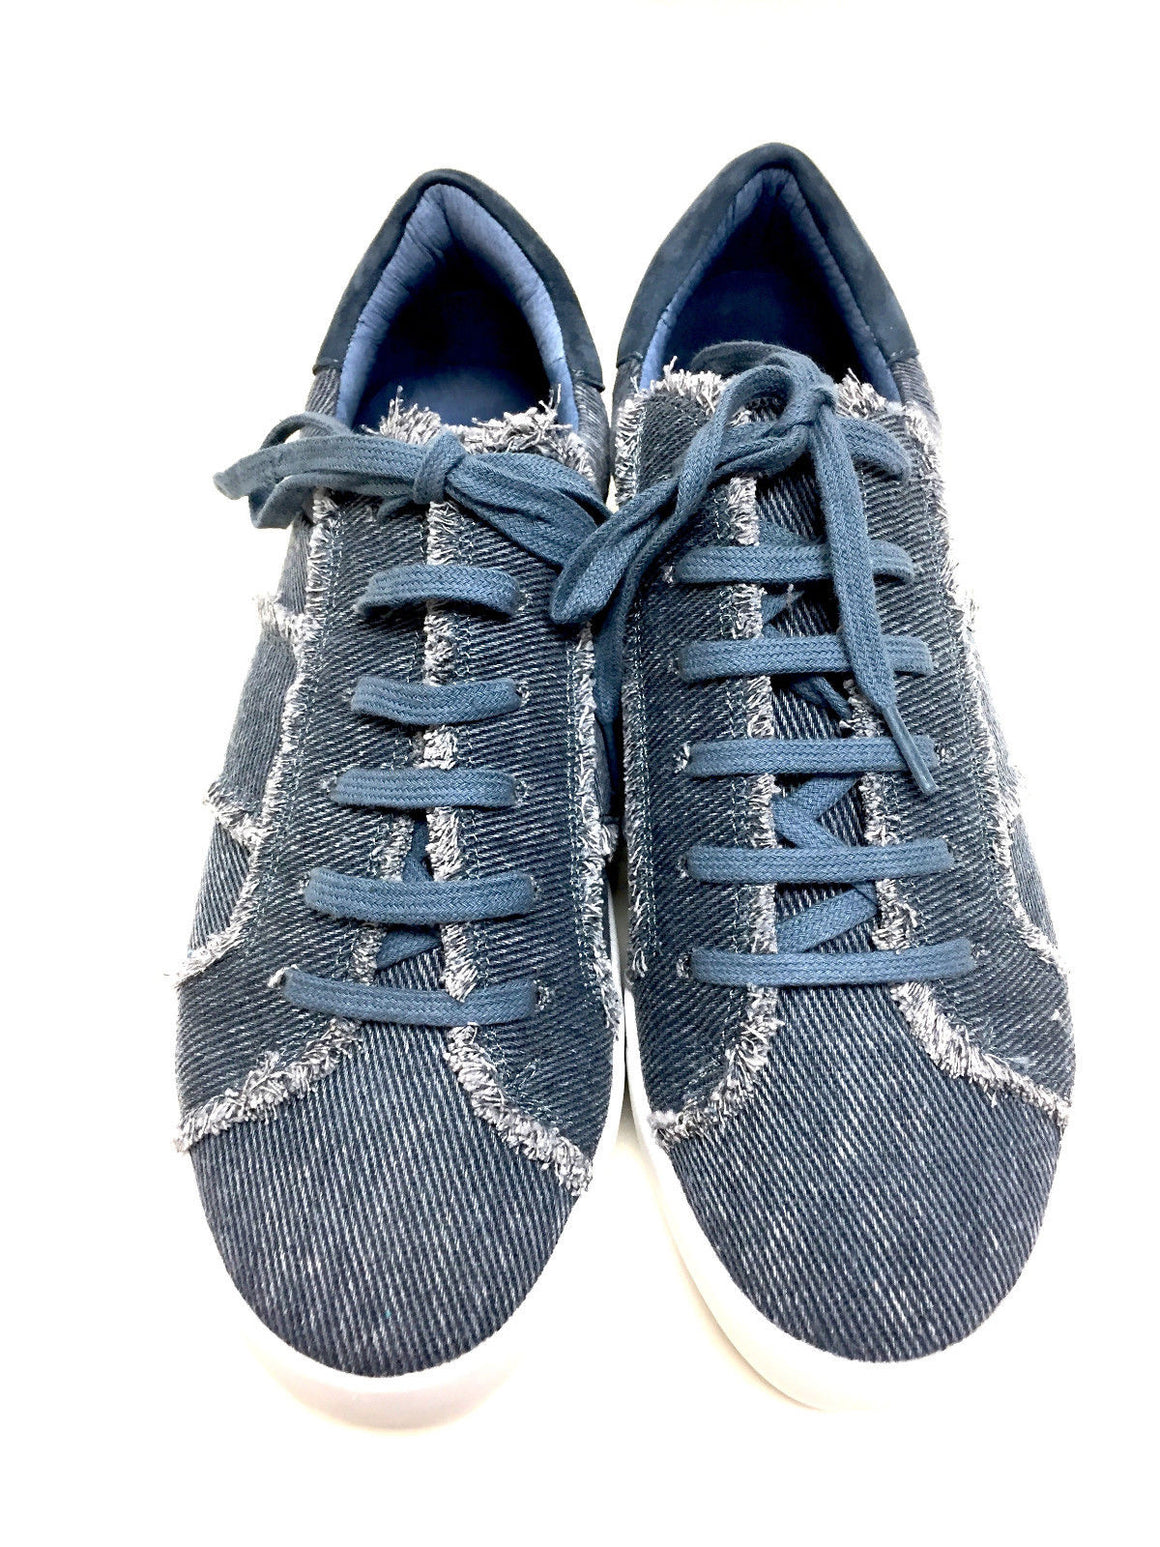 "JOIE Dark-Blue Frayed Denim ""DAKOTA"" Sneakers Shoes Size: 7.5"